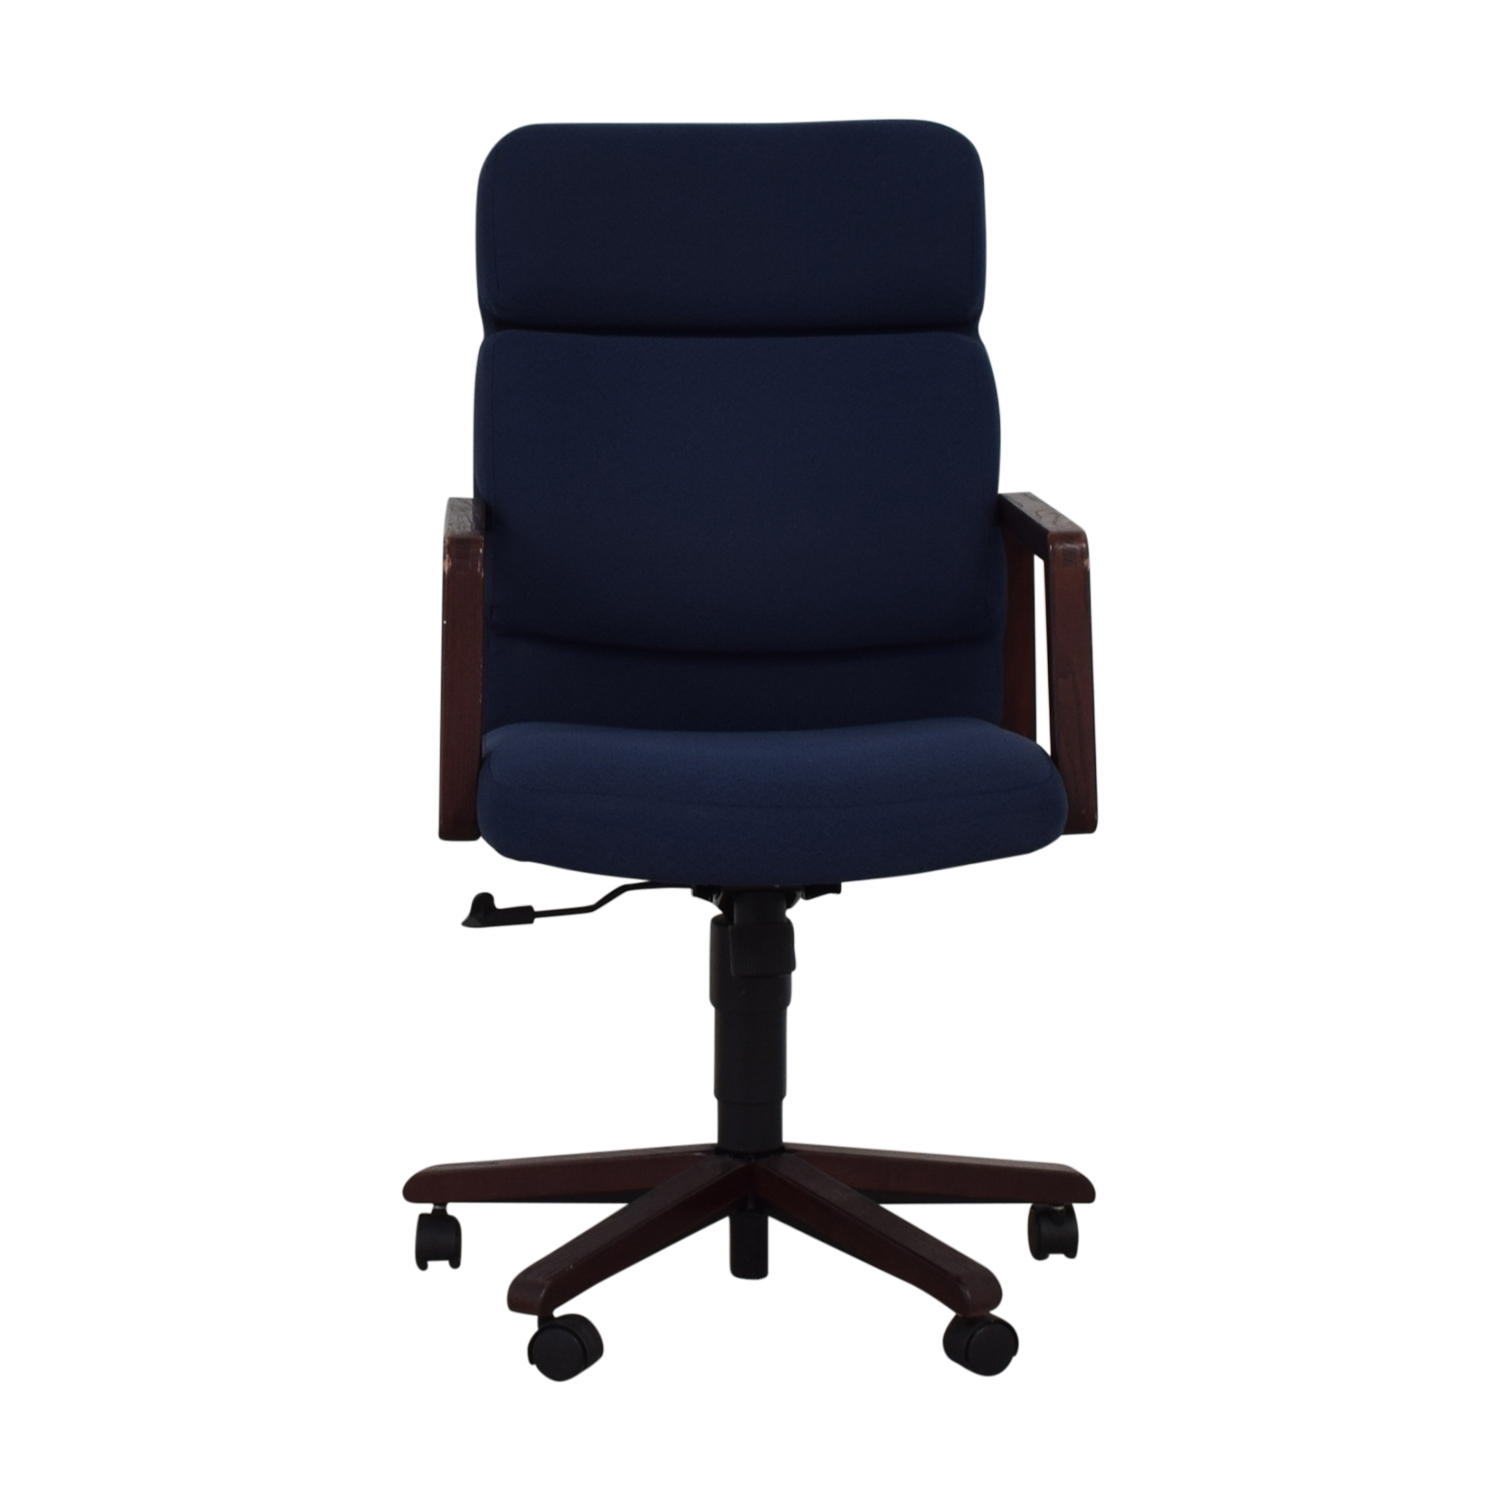 Blue Office Chair on Castors coupon